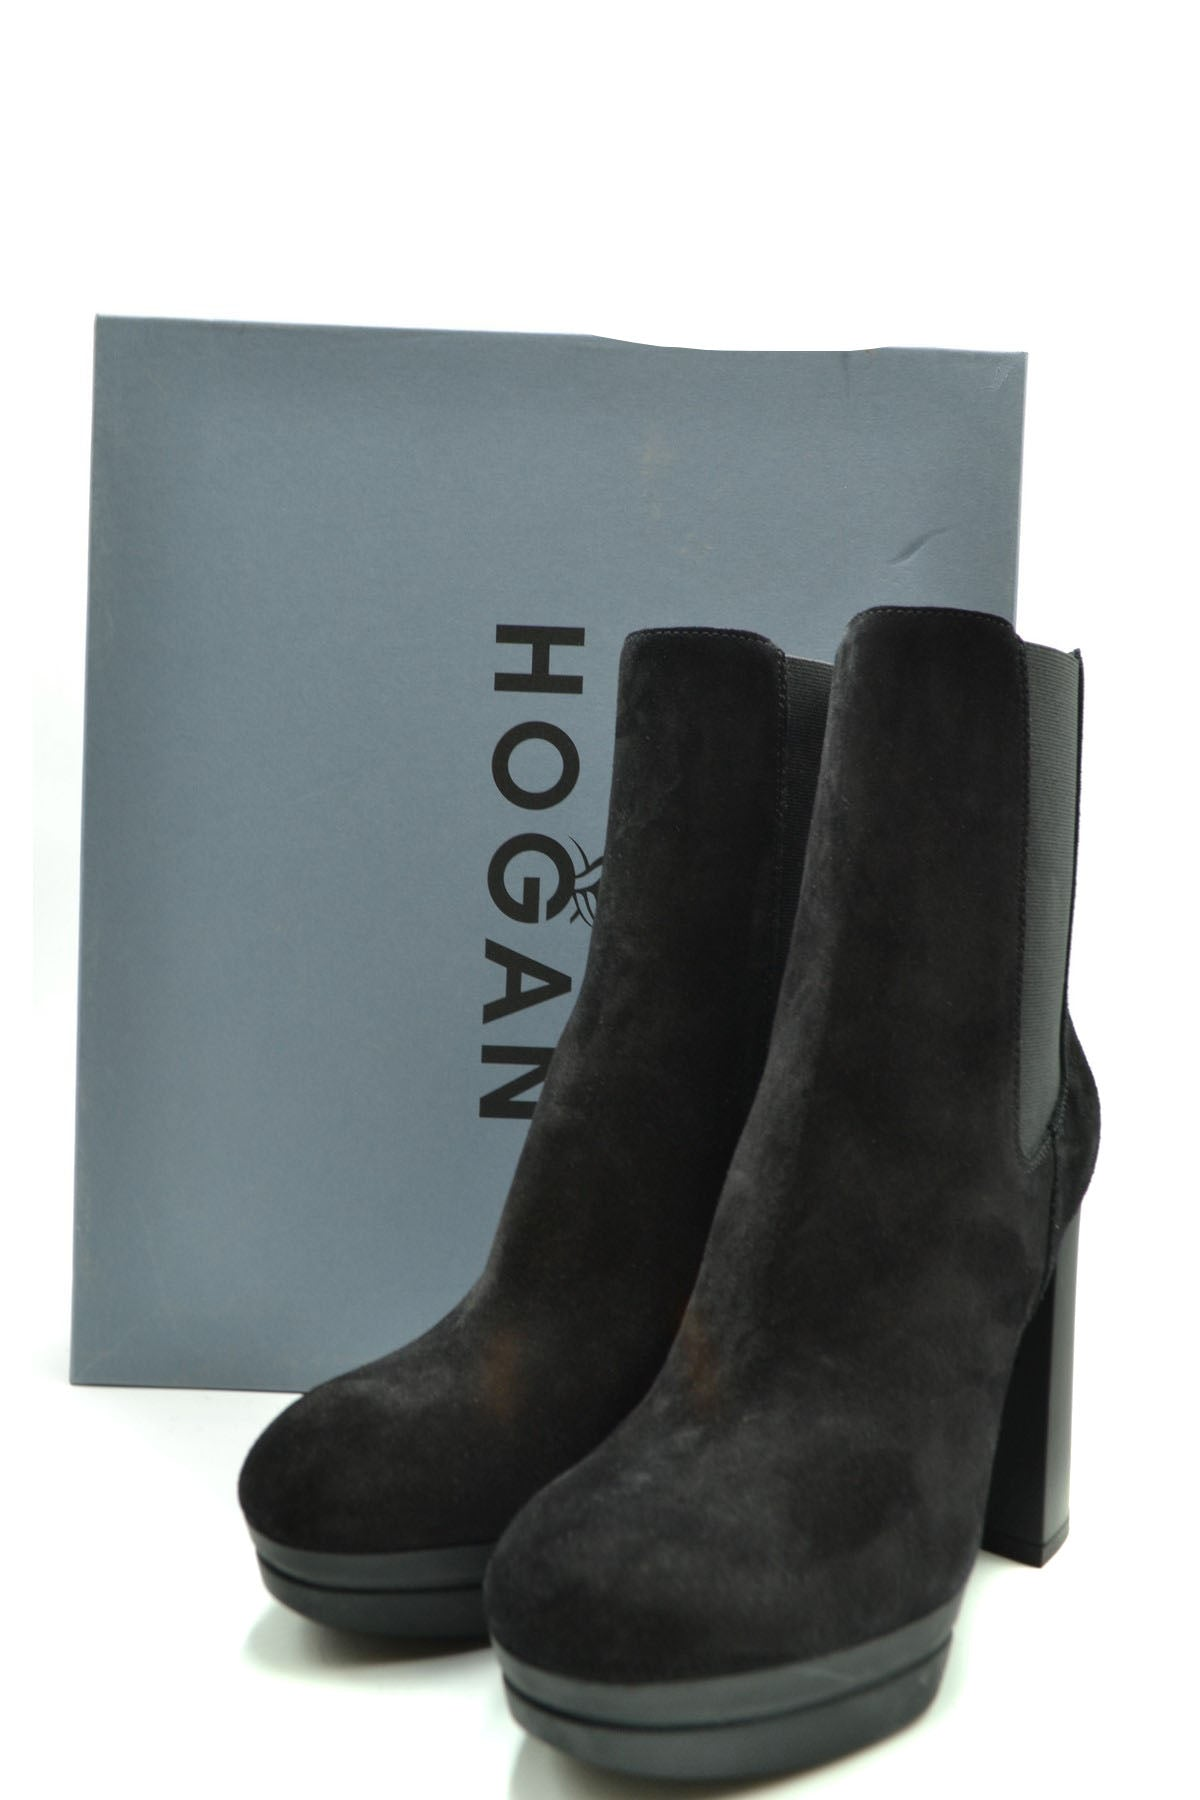 Shoes Hogan-Women's Fashion - Women's Shoes - Women's Boots-Product Details Manufacturer Part Number: Hxw3910As00Byeb999Year: 2020Composition: Chamois 100%Size: EuHeel'S Height: 11Gender: WomanSeason: Fall / WinterType Of Accessory: BootsMain Color: BlackTerms: New With LabelMade In: Italy-Keyomi-Sook